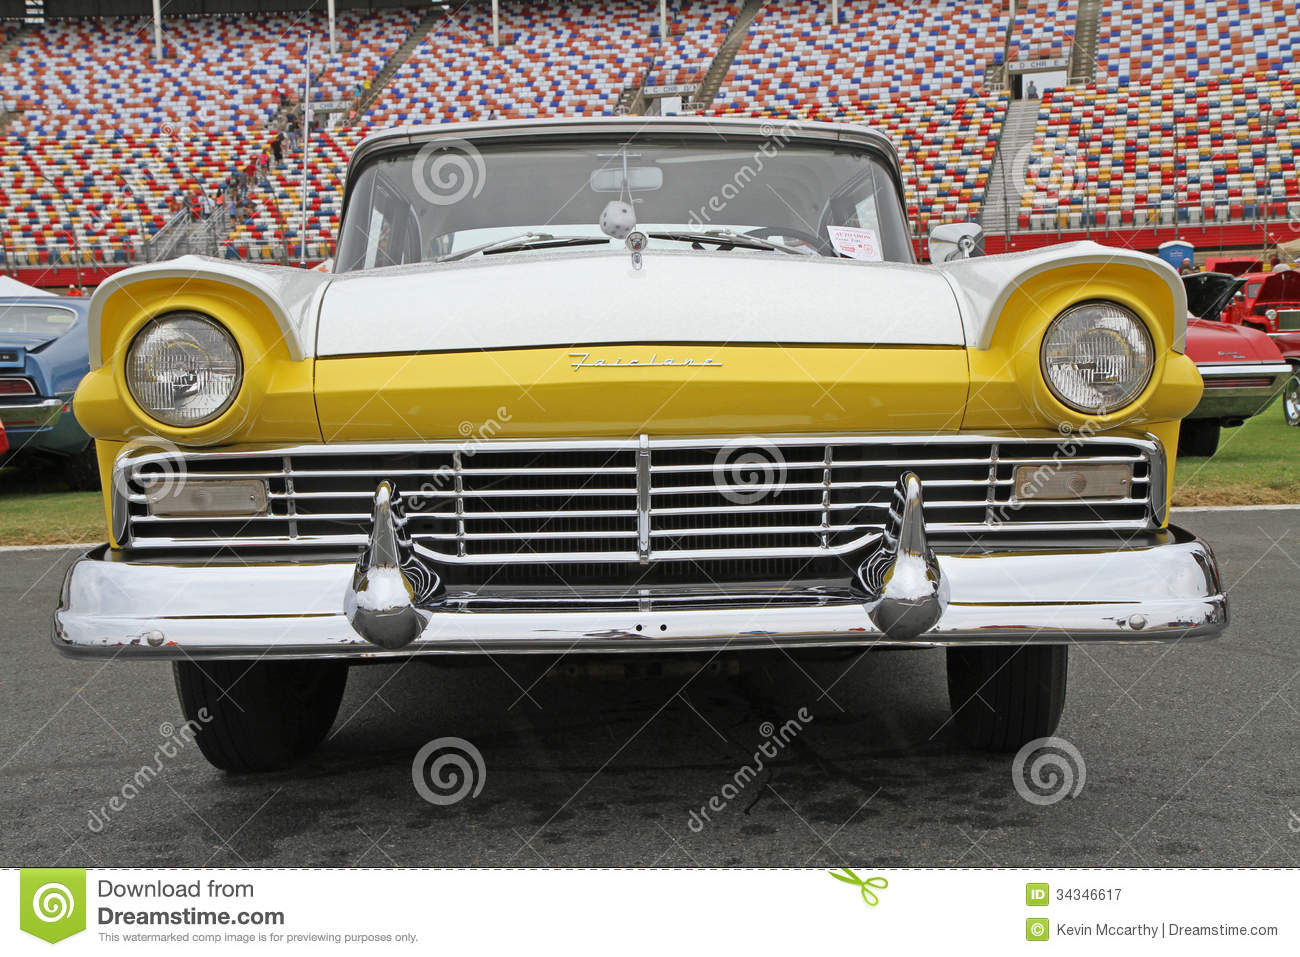 Classic Ford Fairlane Automobile Editorial Photography Image Of - Restore a muscle car car show